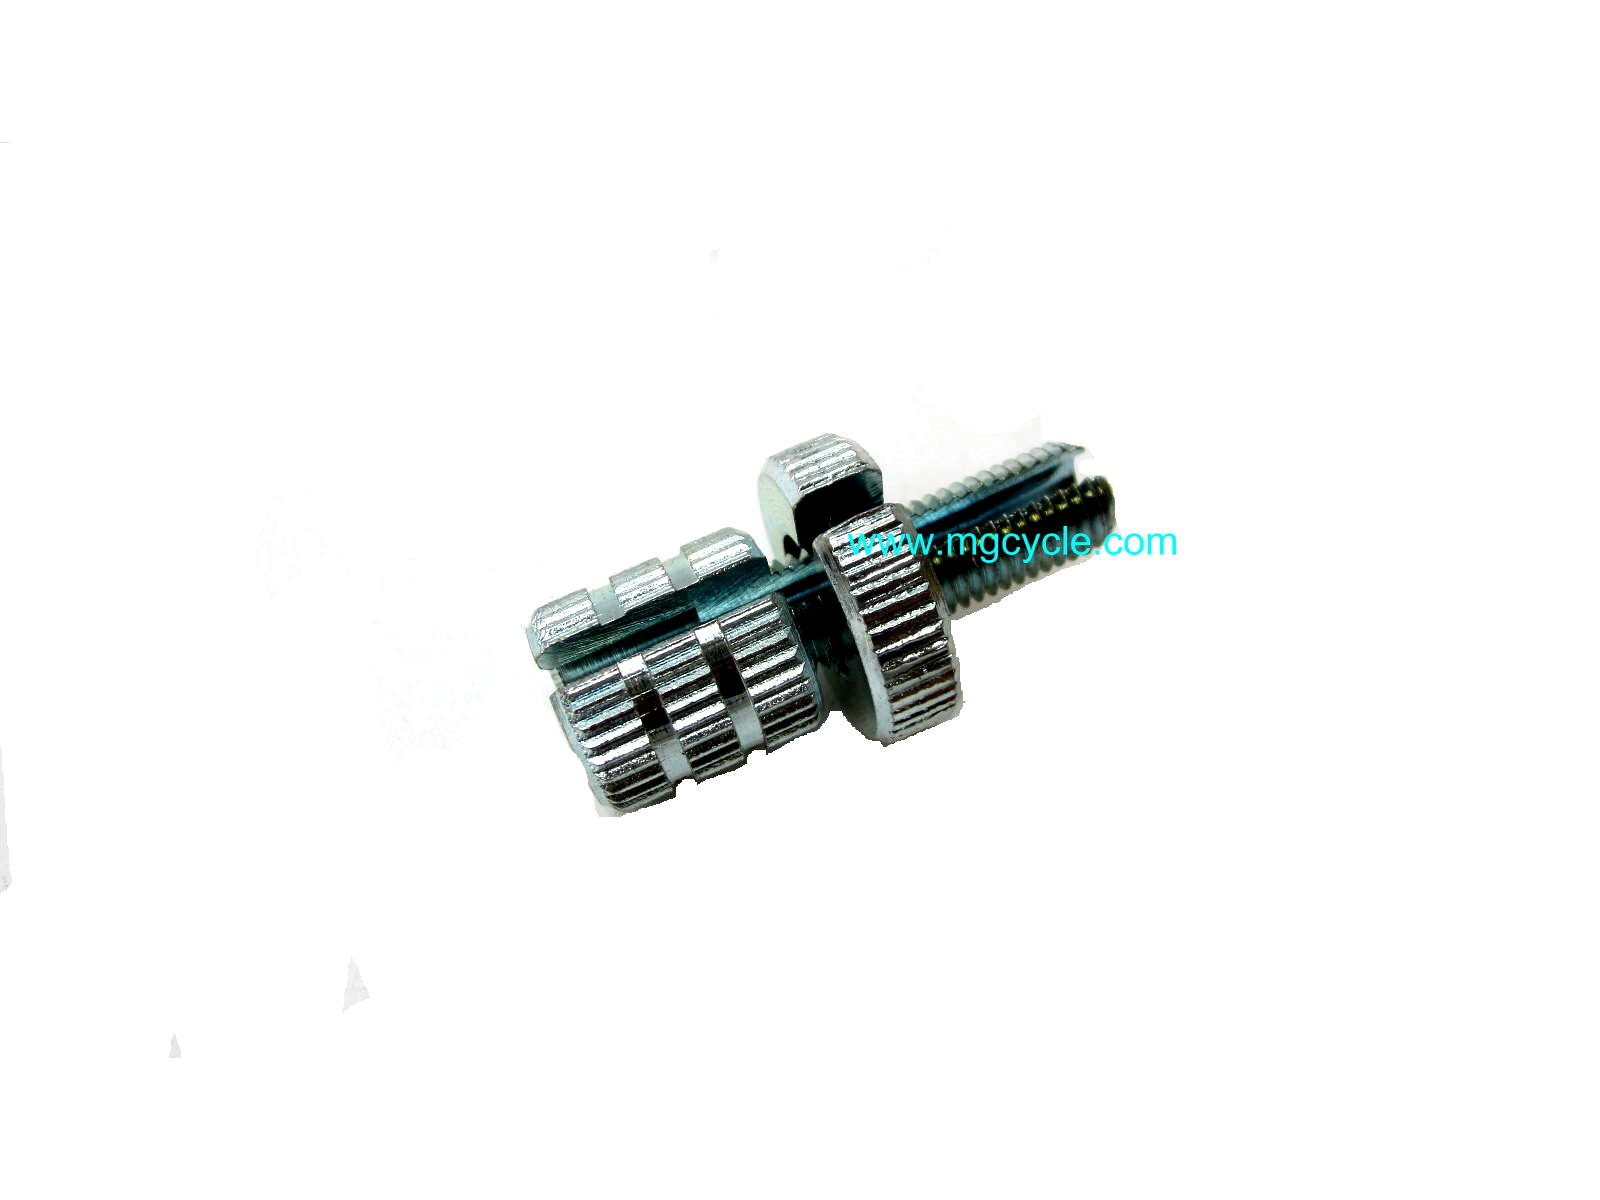 clutch cable adjuster, many many models